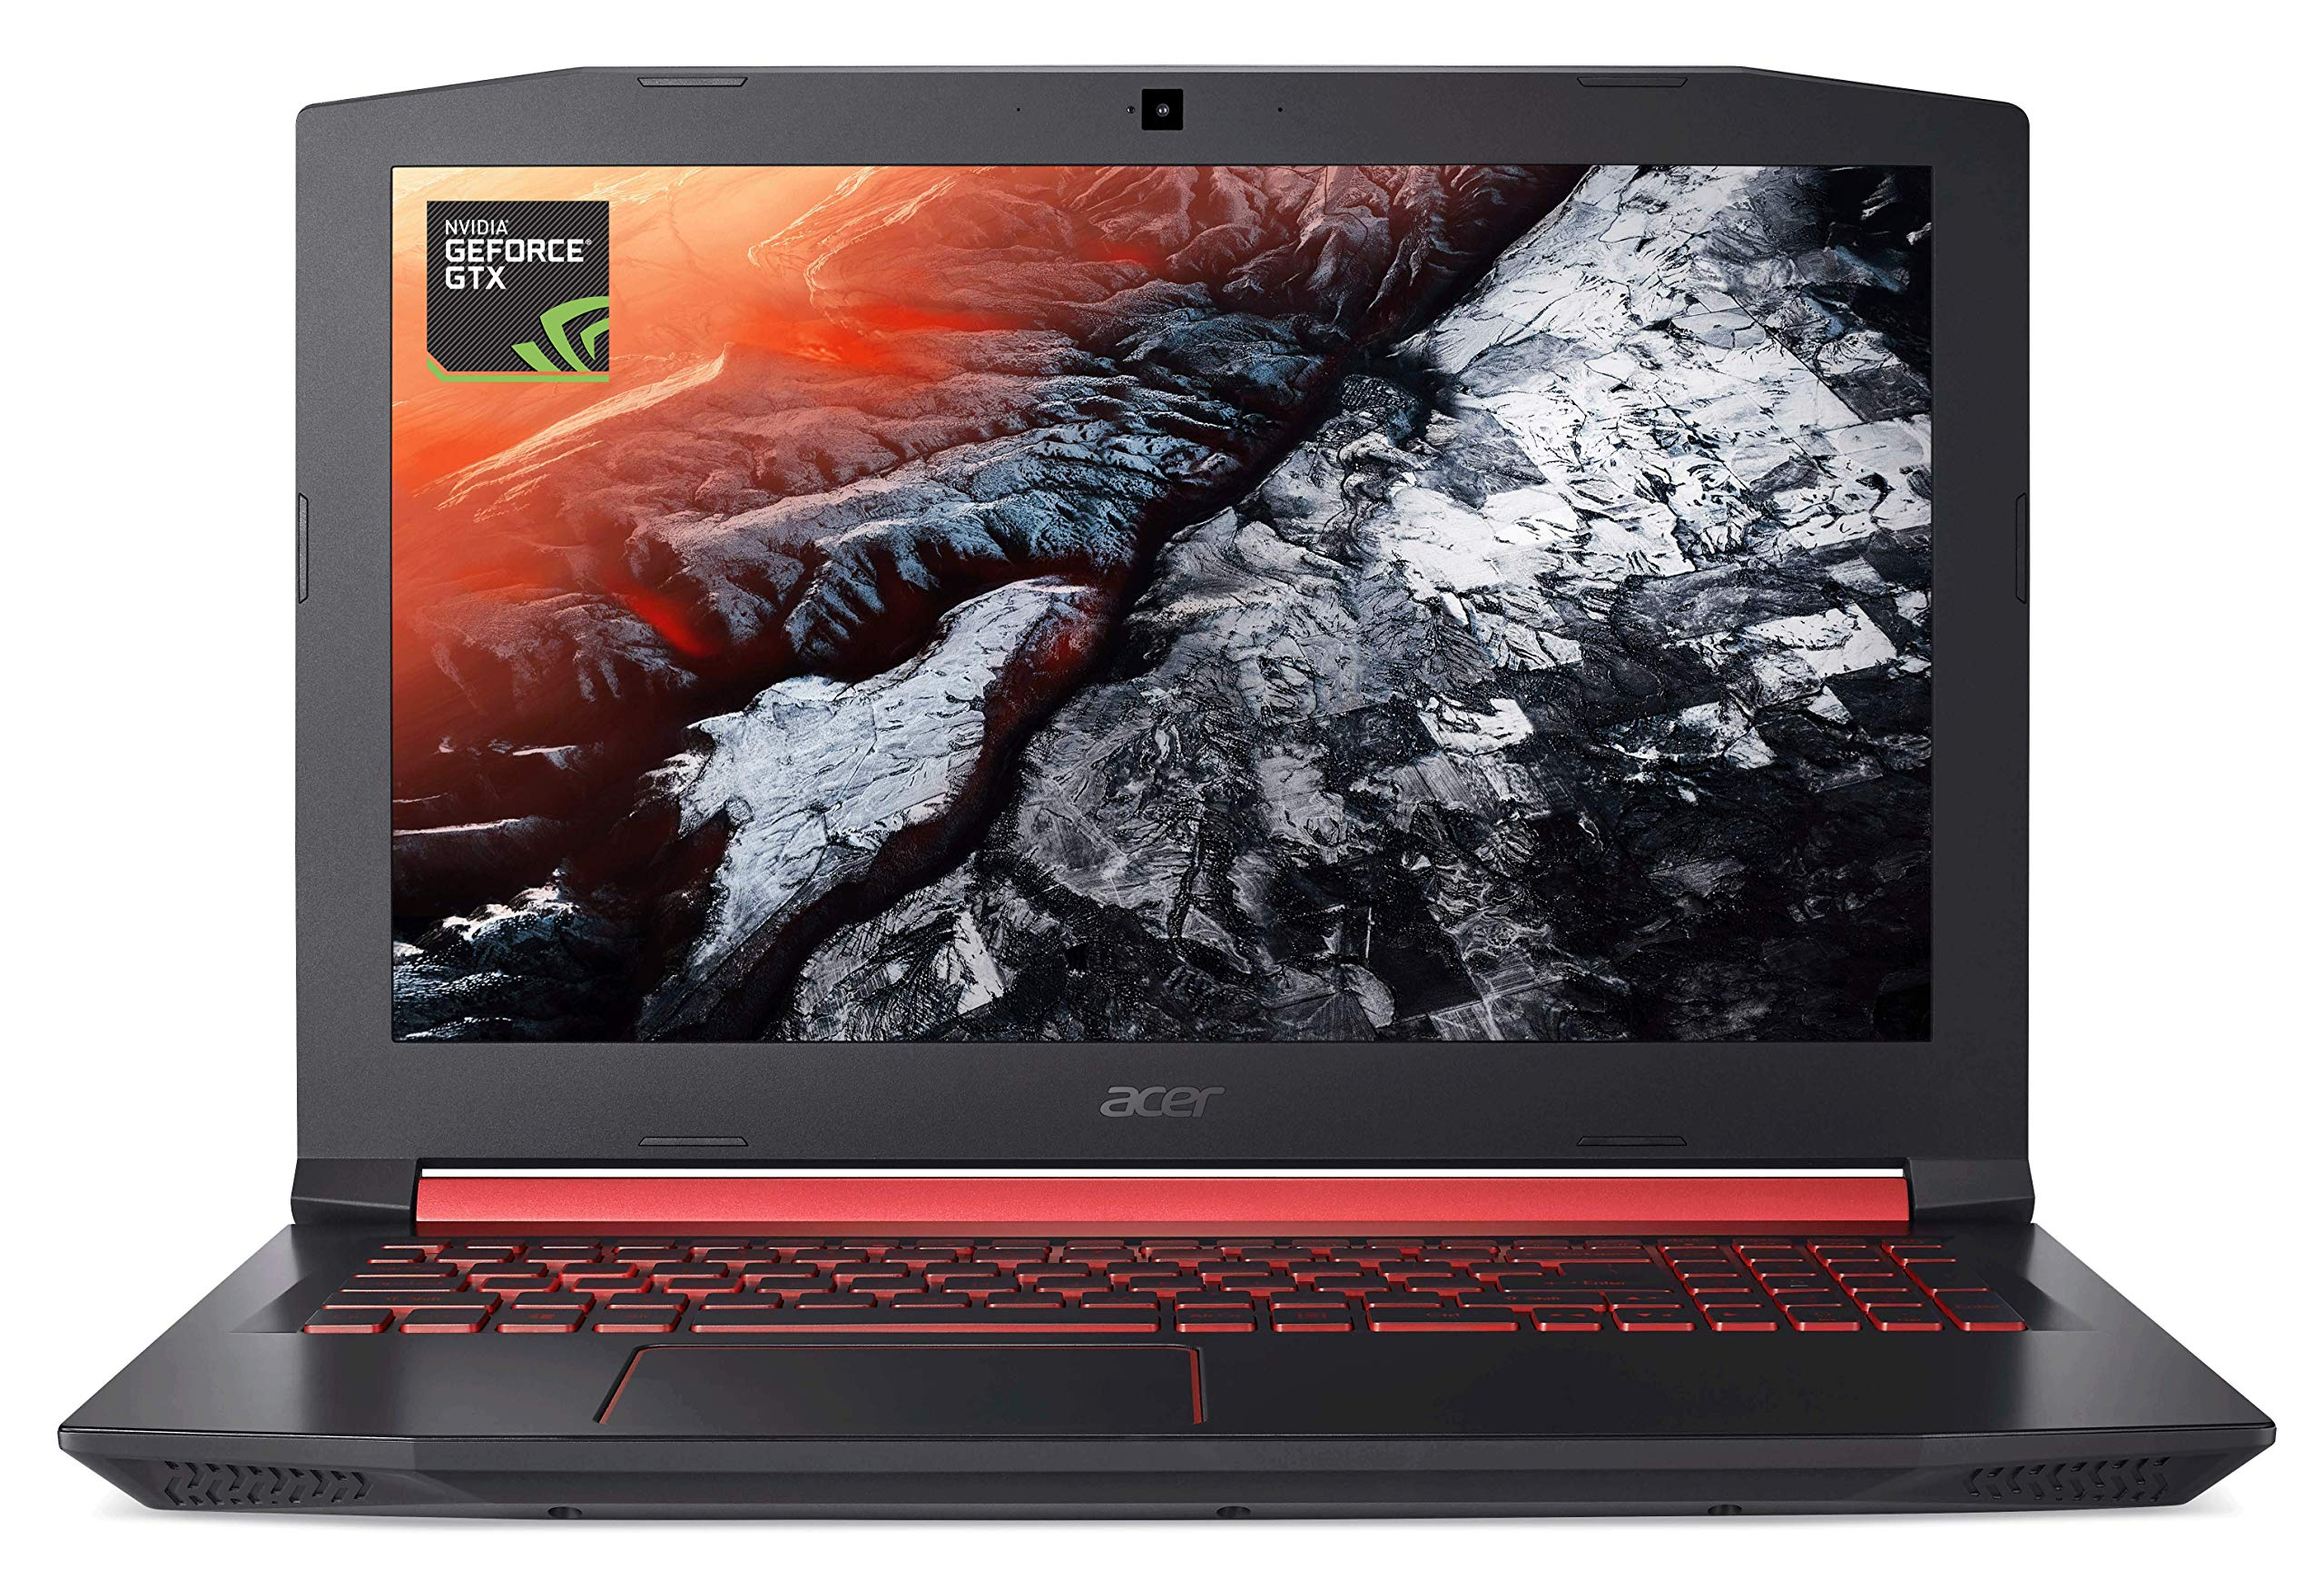 Acer Nitro 5 Gaming Laptop, Intel Core i5-7300HQ, GeForce GTX 1050 Ti, 15.6″ Full HD, 8GB DDR4, 256GB SSD, AN515-51-55WL